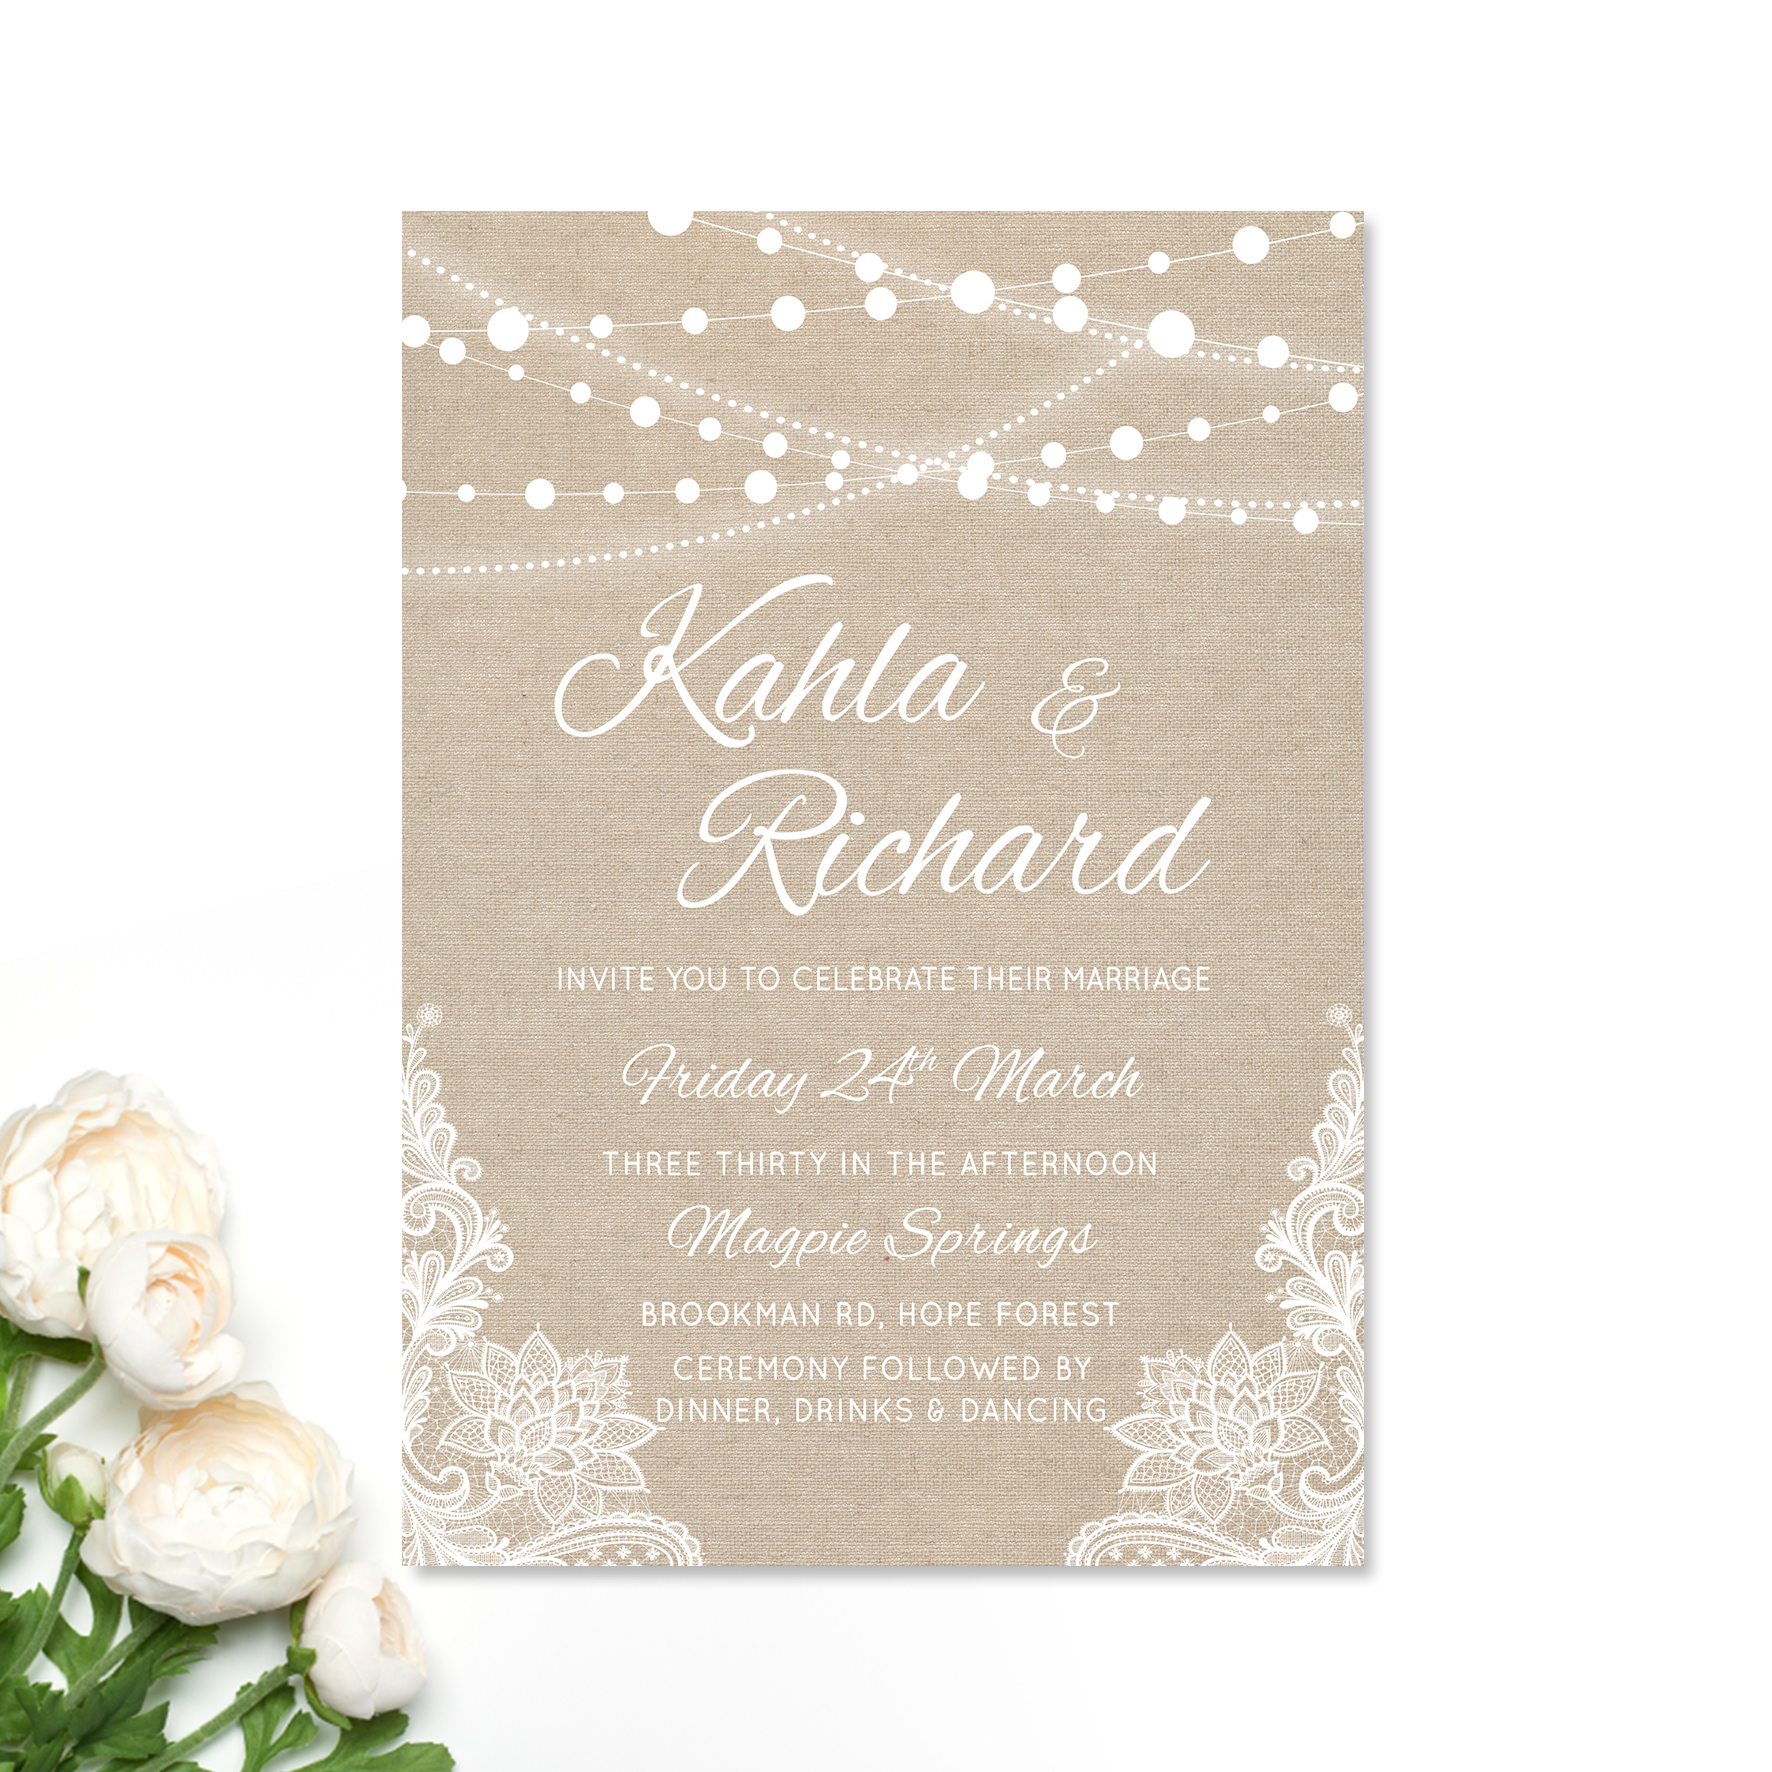 Kahla + Richard Wedding Invitation